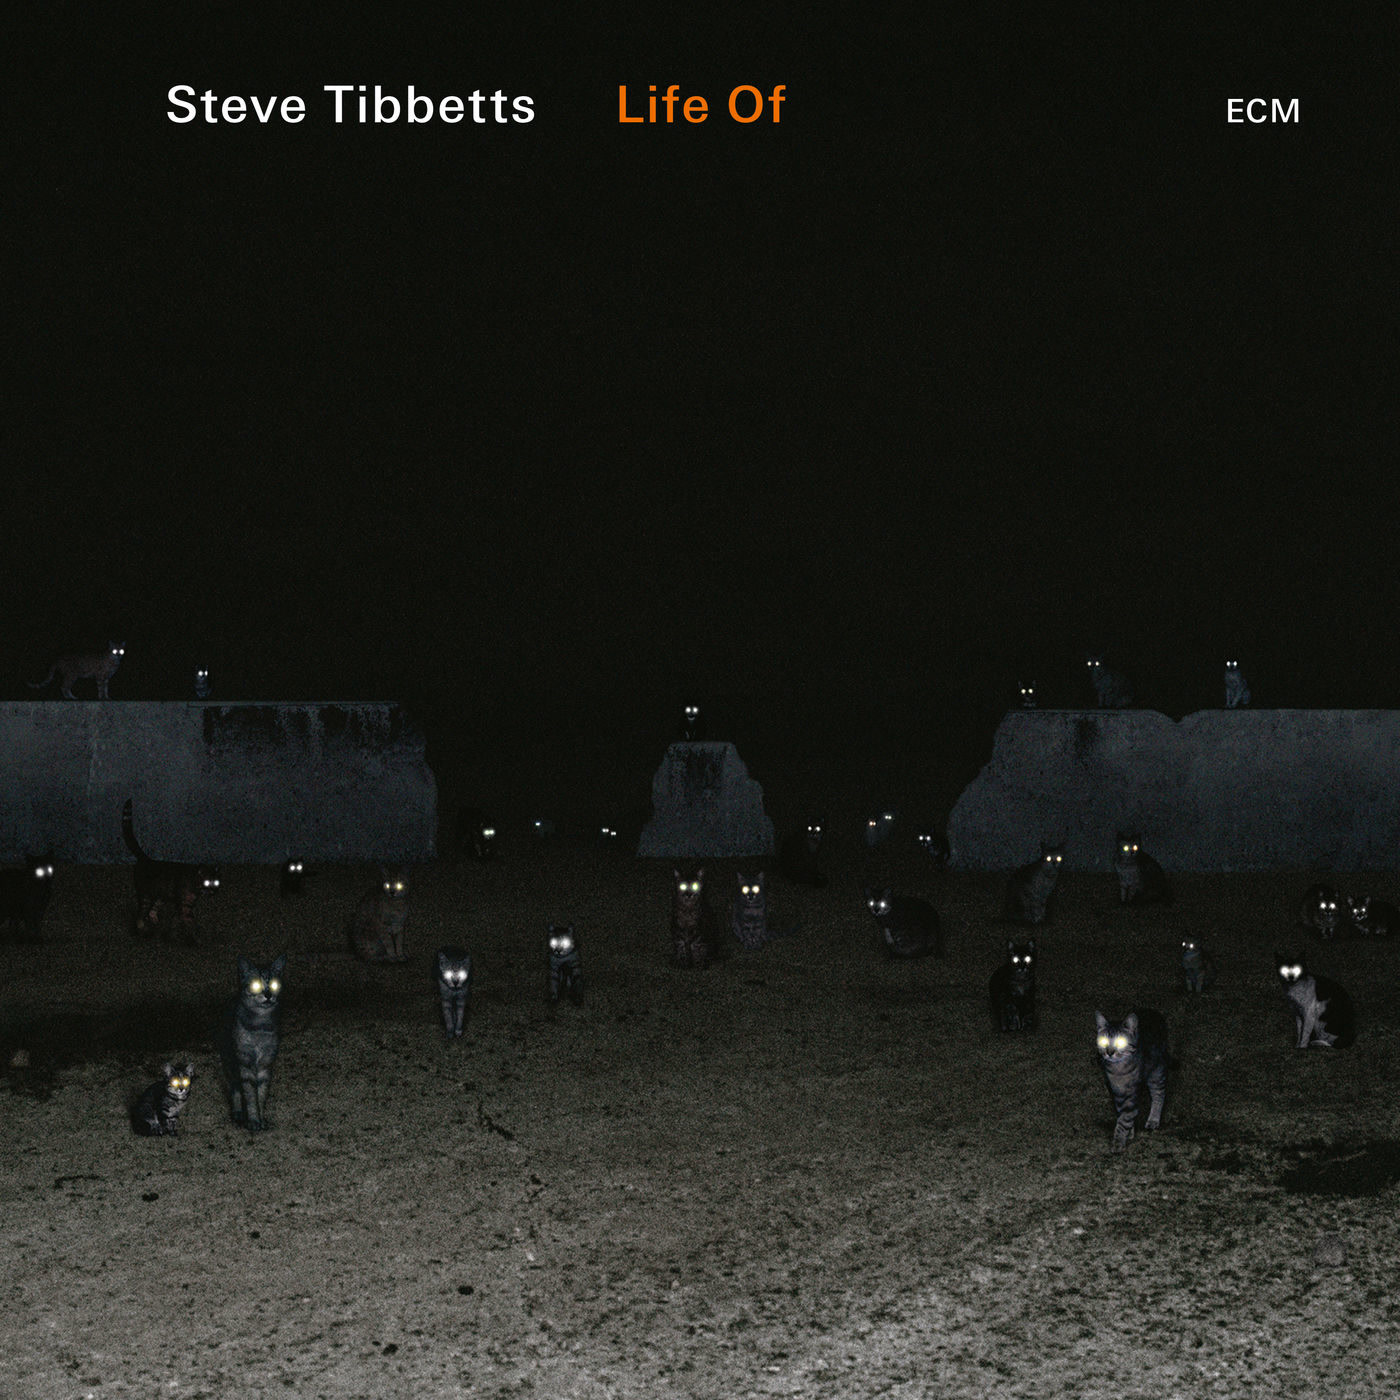 Life Of - Steve Tibbetts